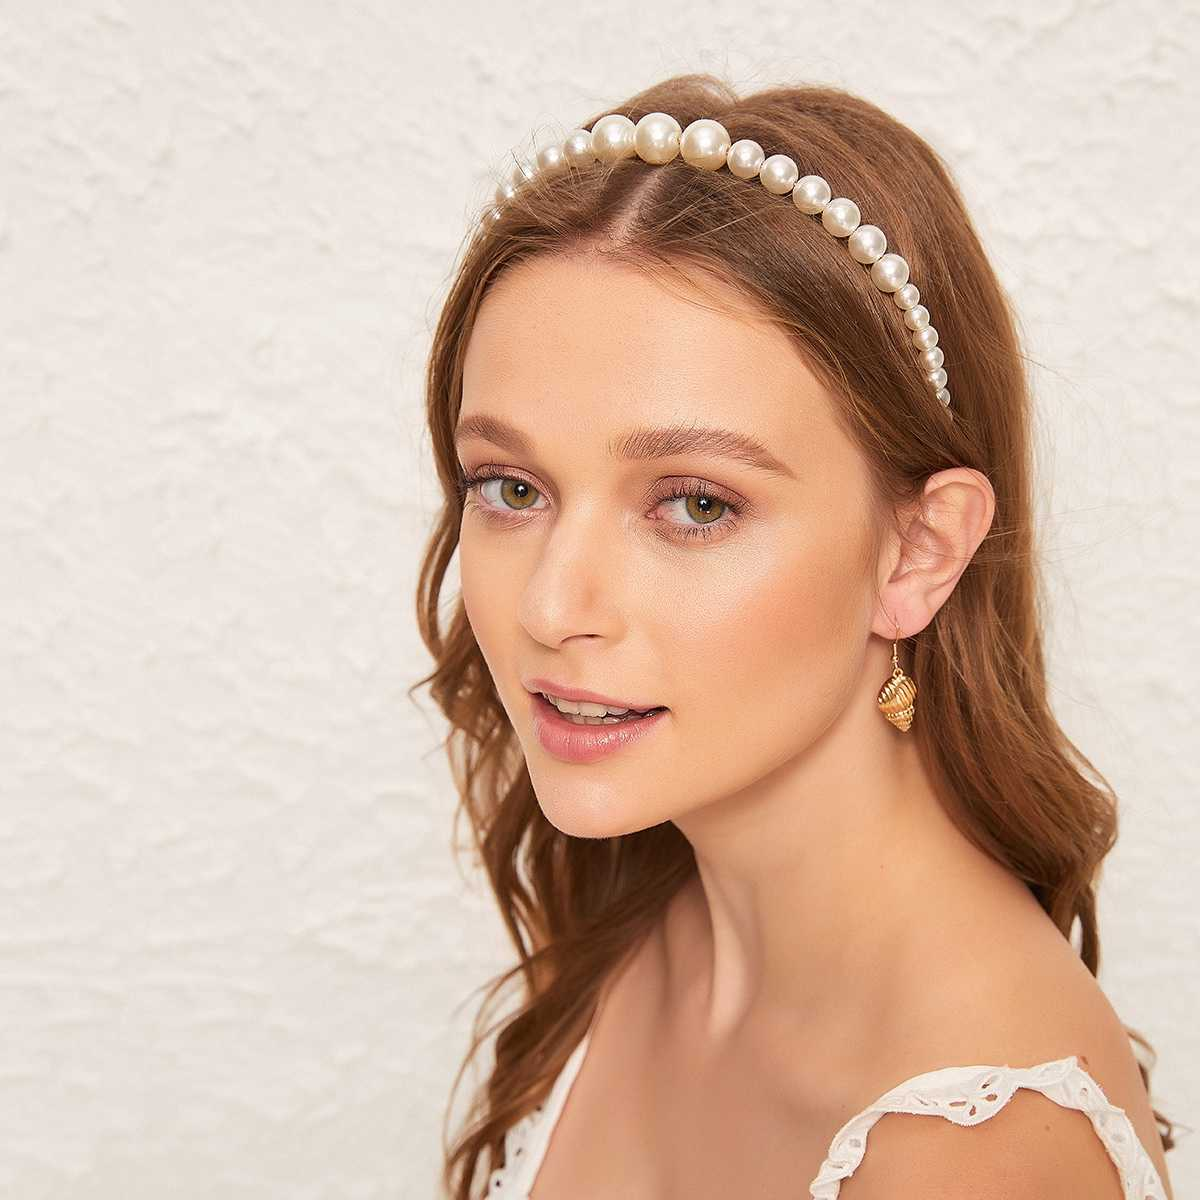 Faux Pearl Design Headband in White by ROMWE on GOOFASH